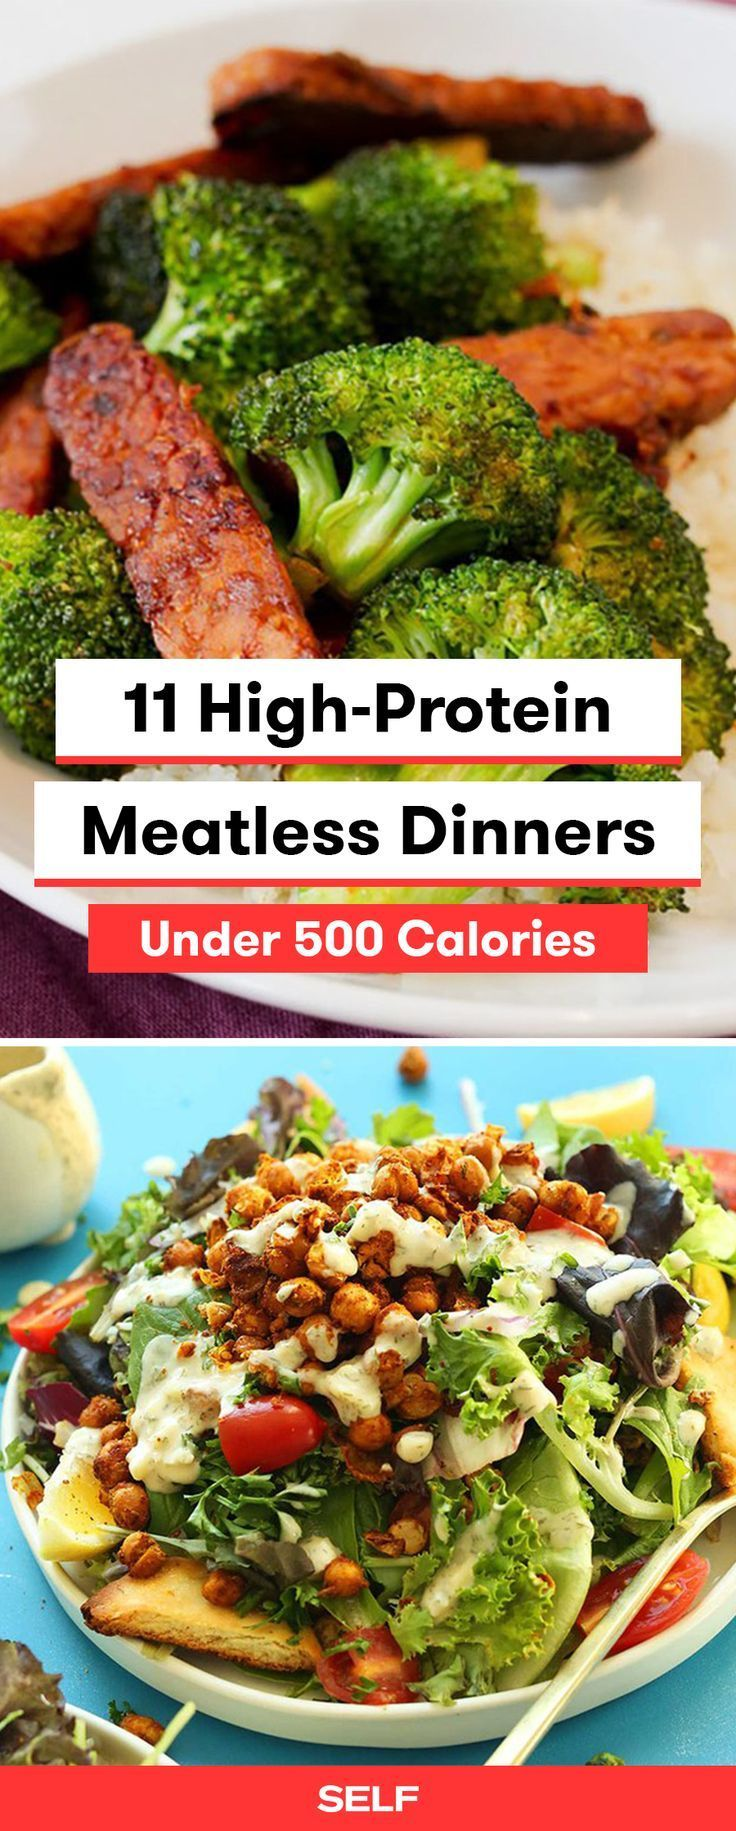 11 HighProtein Meatless Dinners Under 500 Calories High Protein Vegetarian Recipes Under  Calories Self - High Protein Meatless Dinners Under  Calories Of Meatless High Protein Dinners Out There Just Waiting To Change Your Diet These  Recipes Incorporate Everything From Meat Substitutes